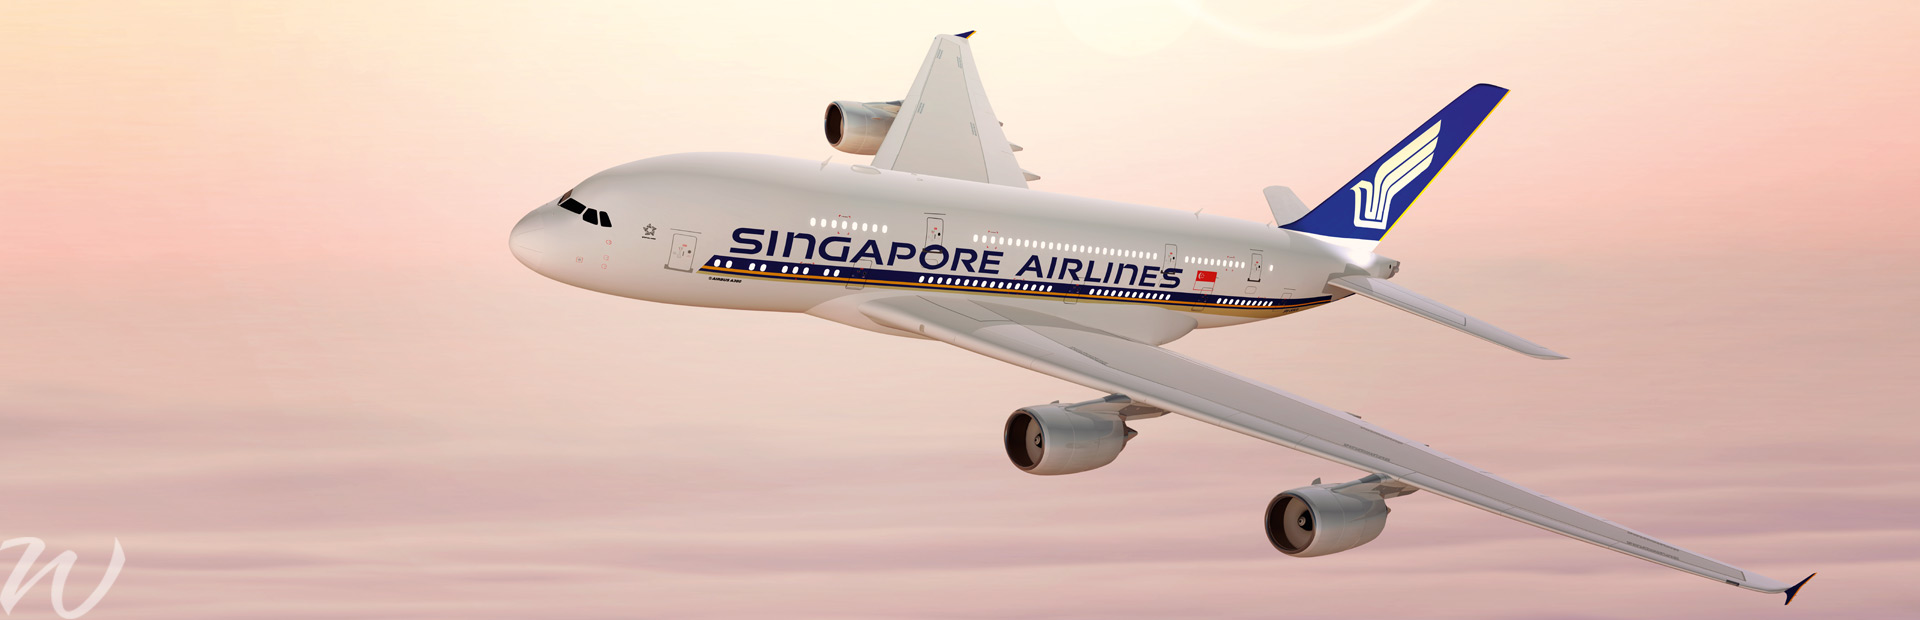 Singapore Airlines, flying safe